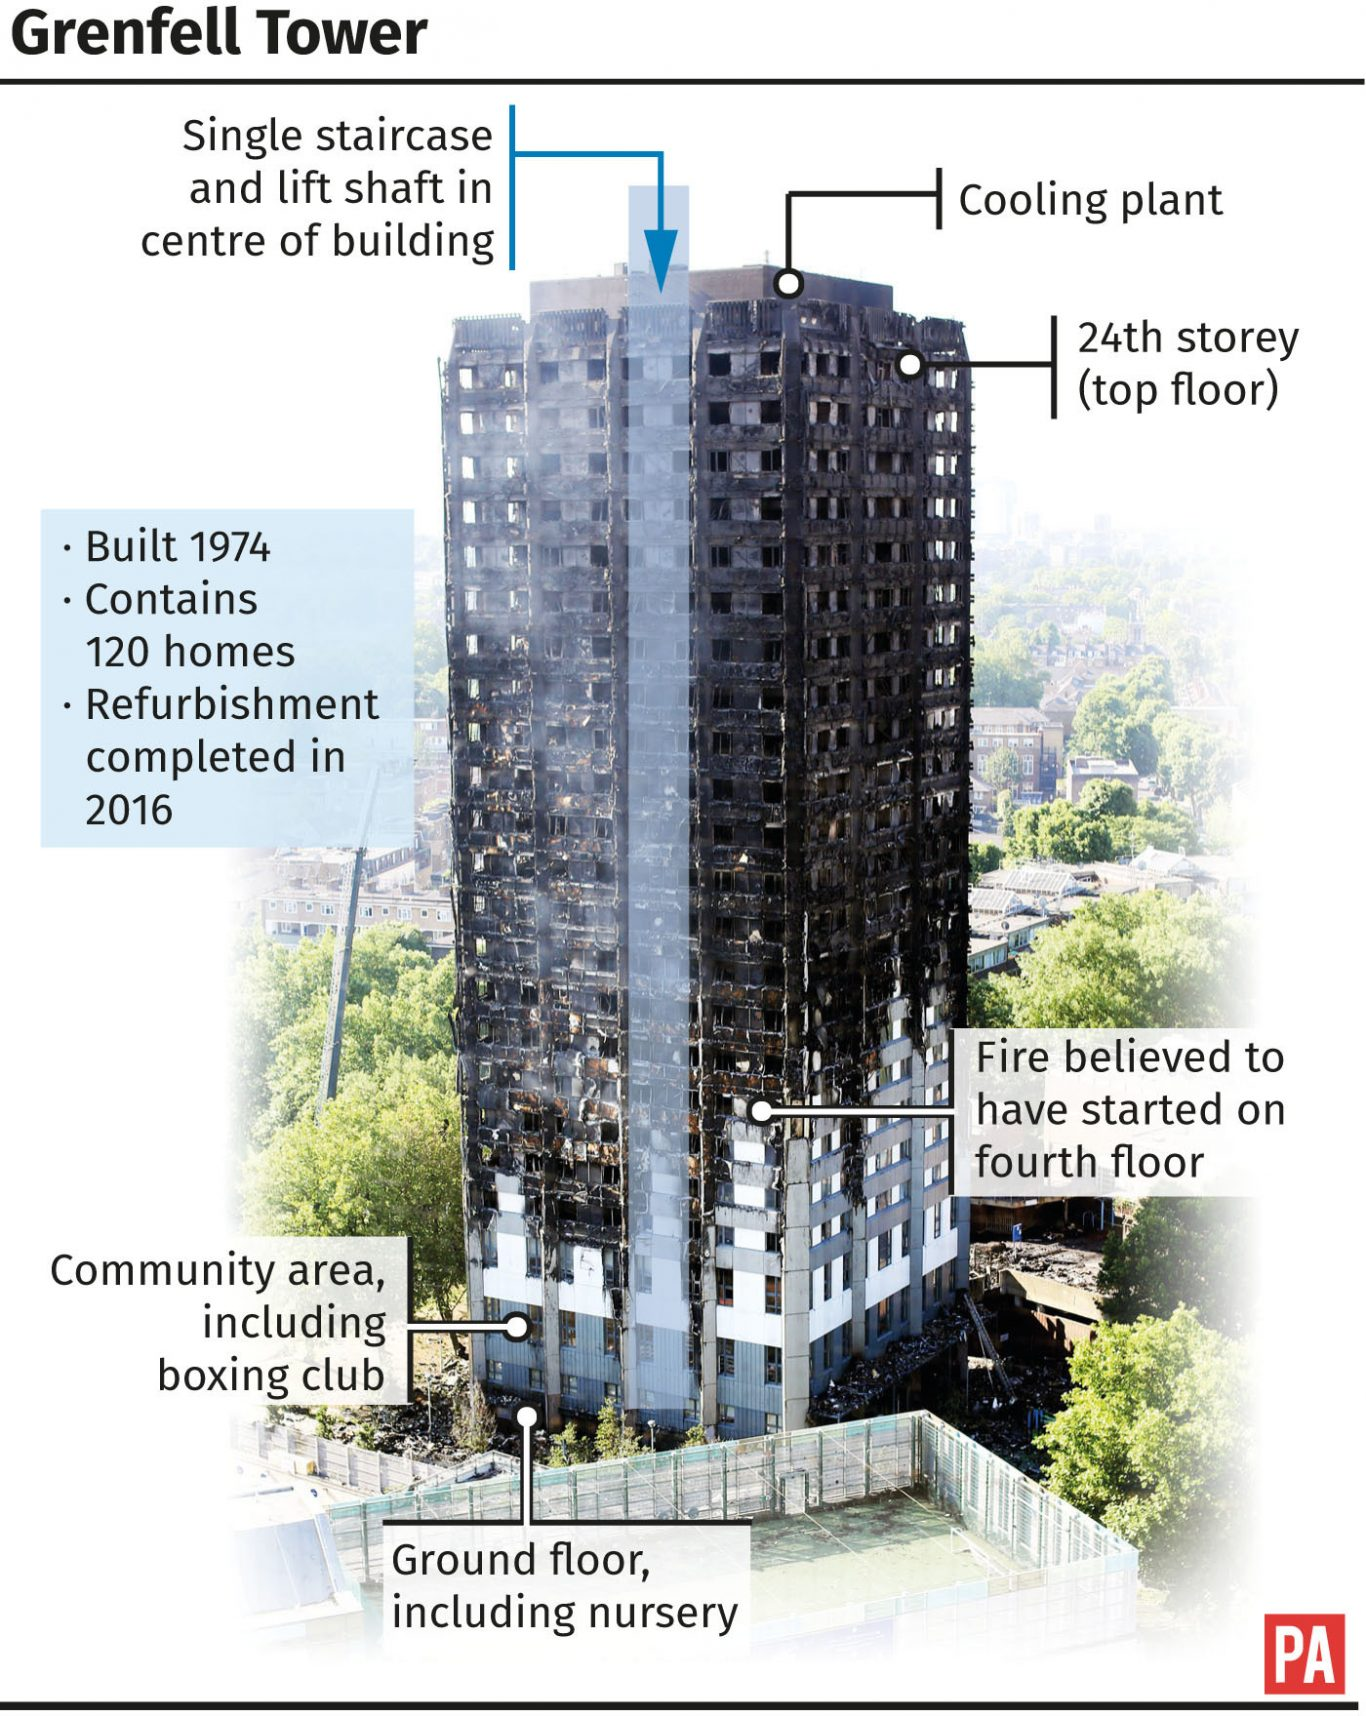 Banned building materials suspected in London's deadly Grenfell Tower fire: UK government